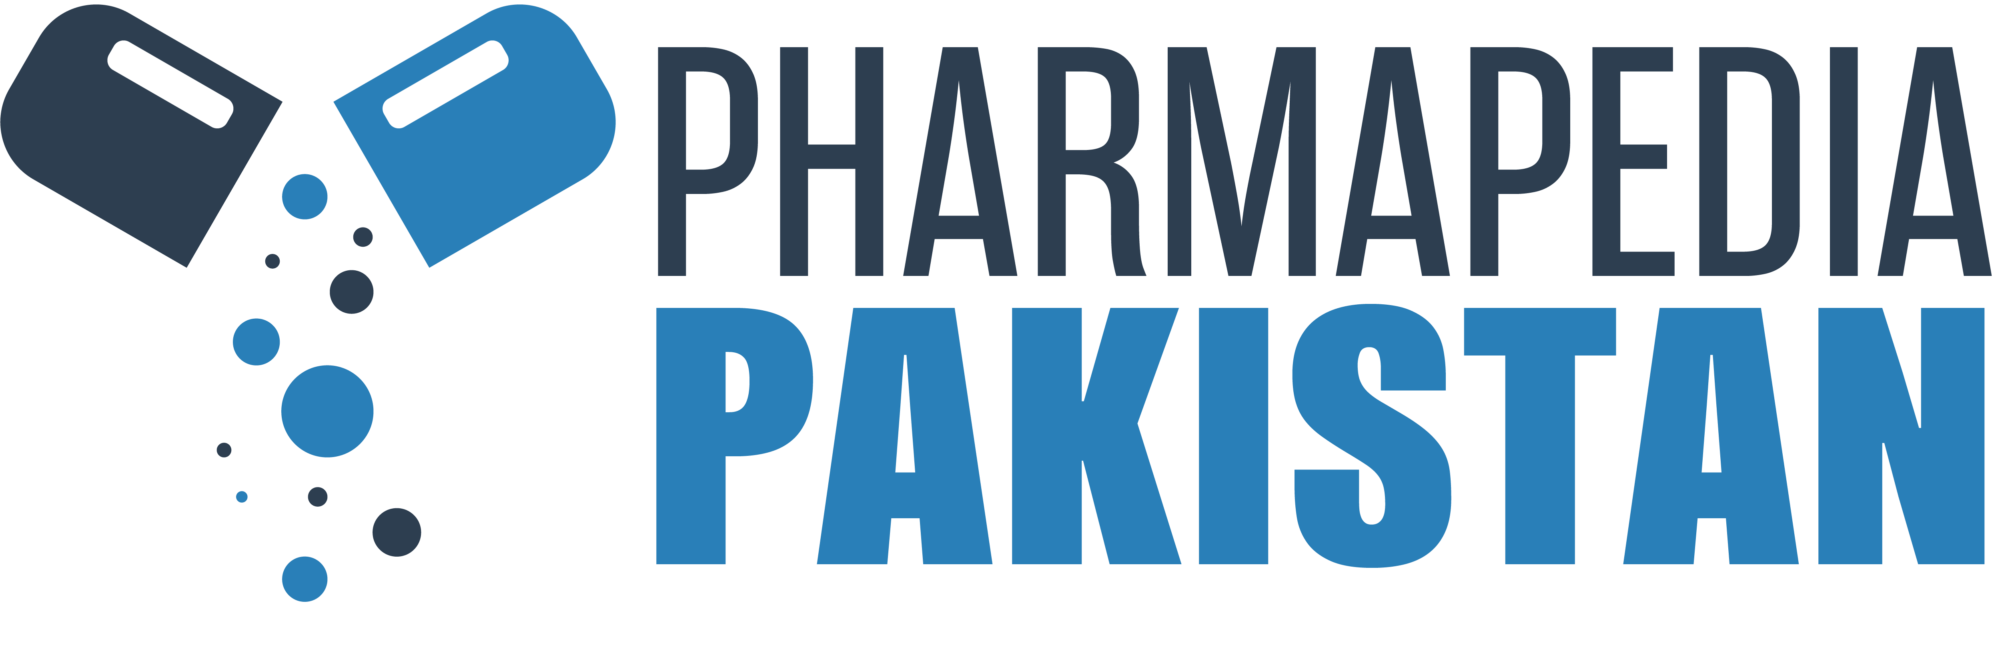 Pharmapedia Pakistan